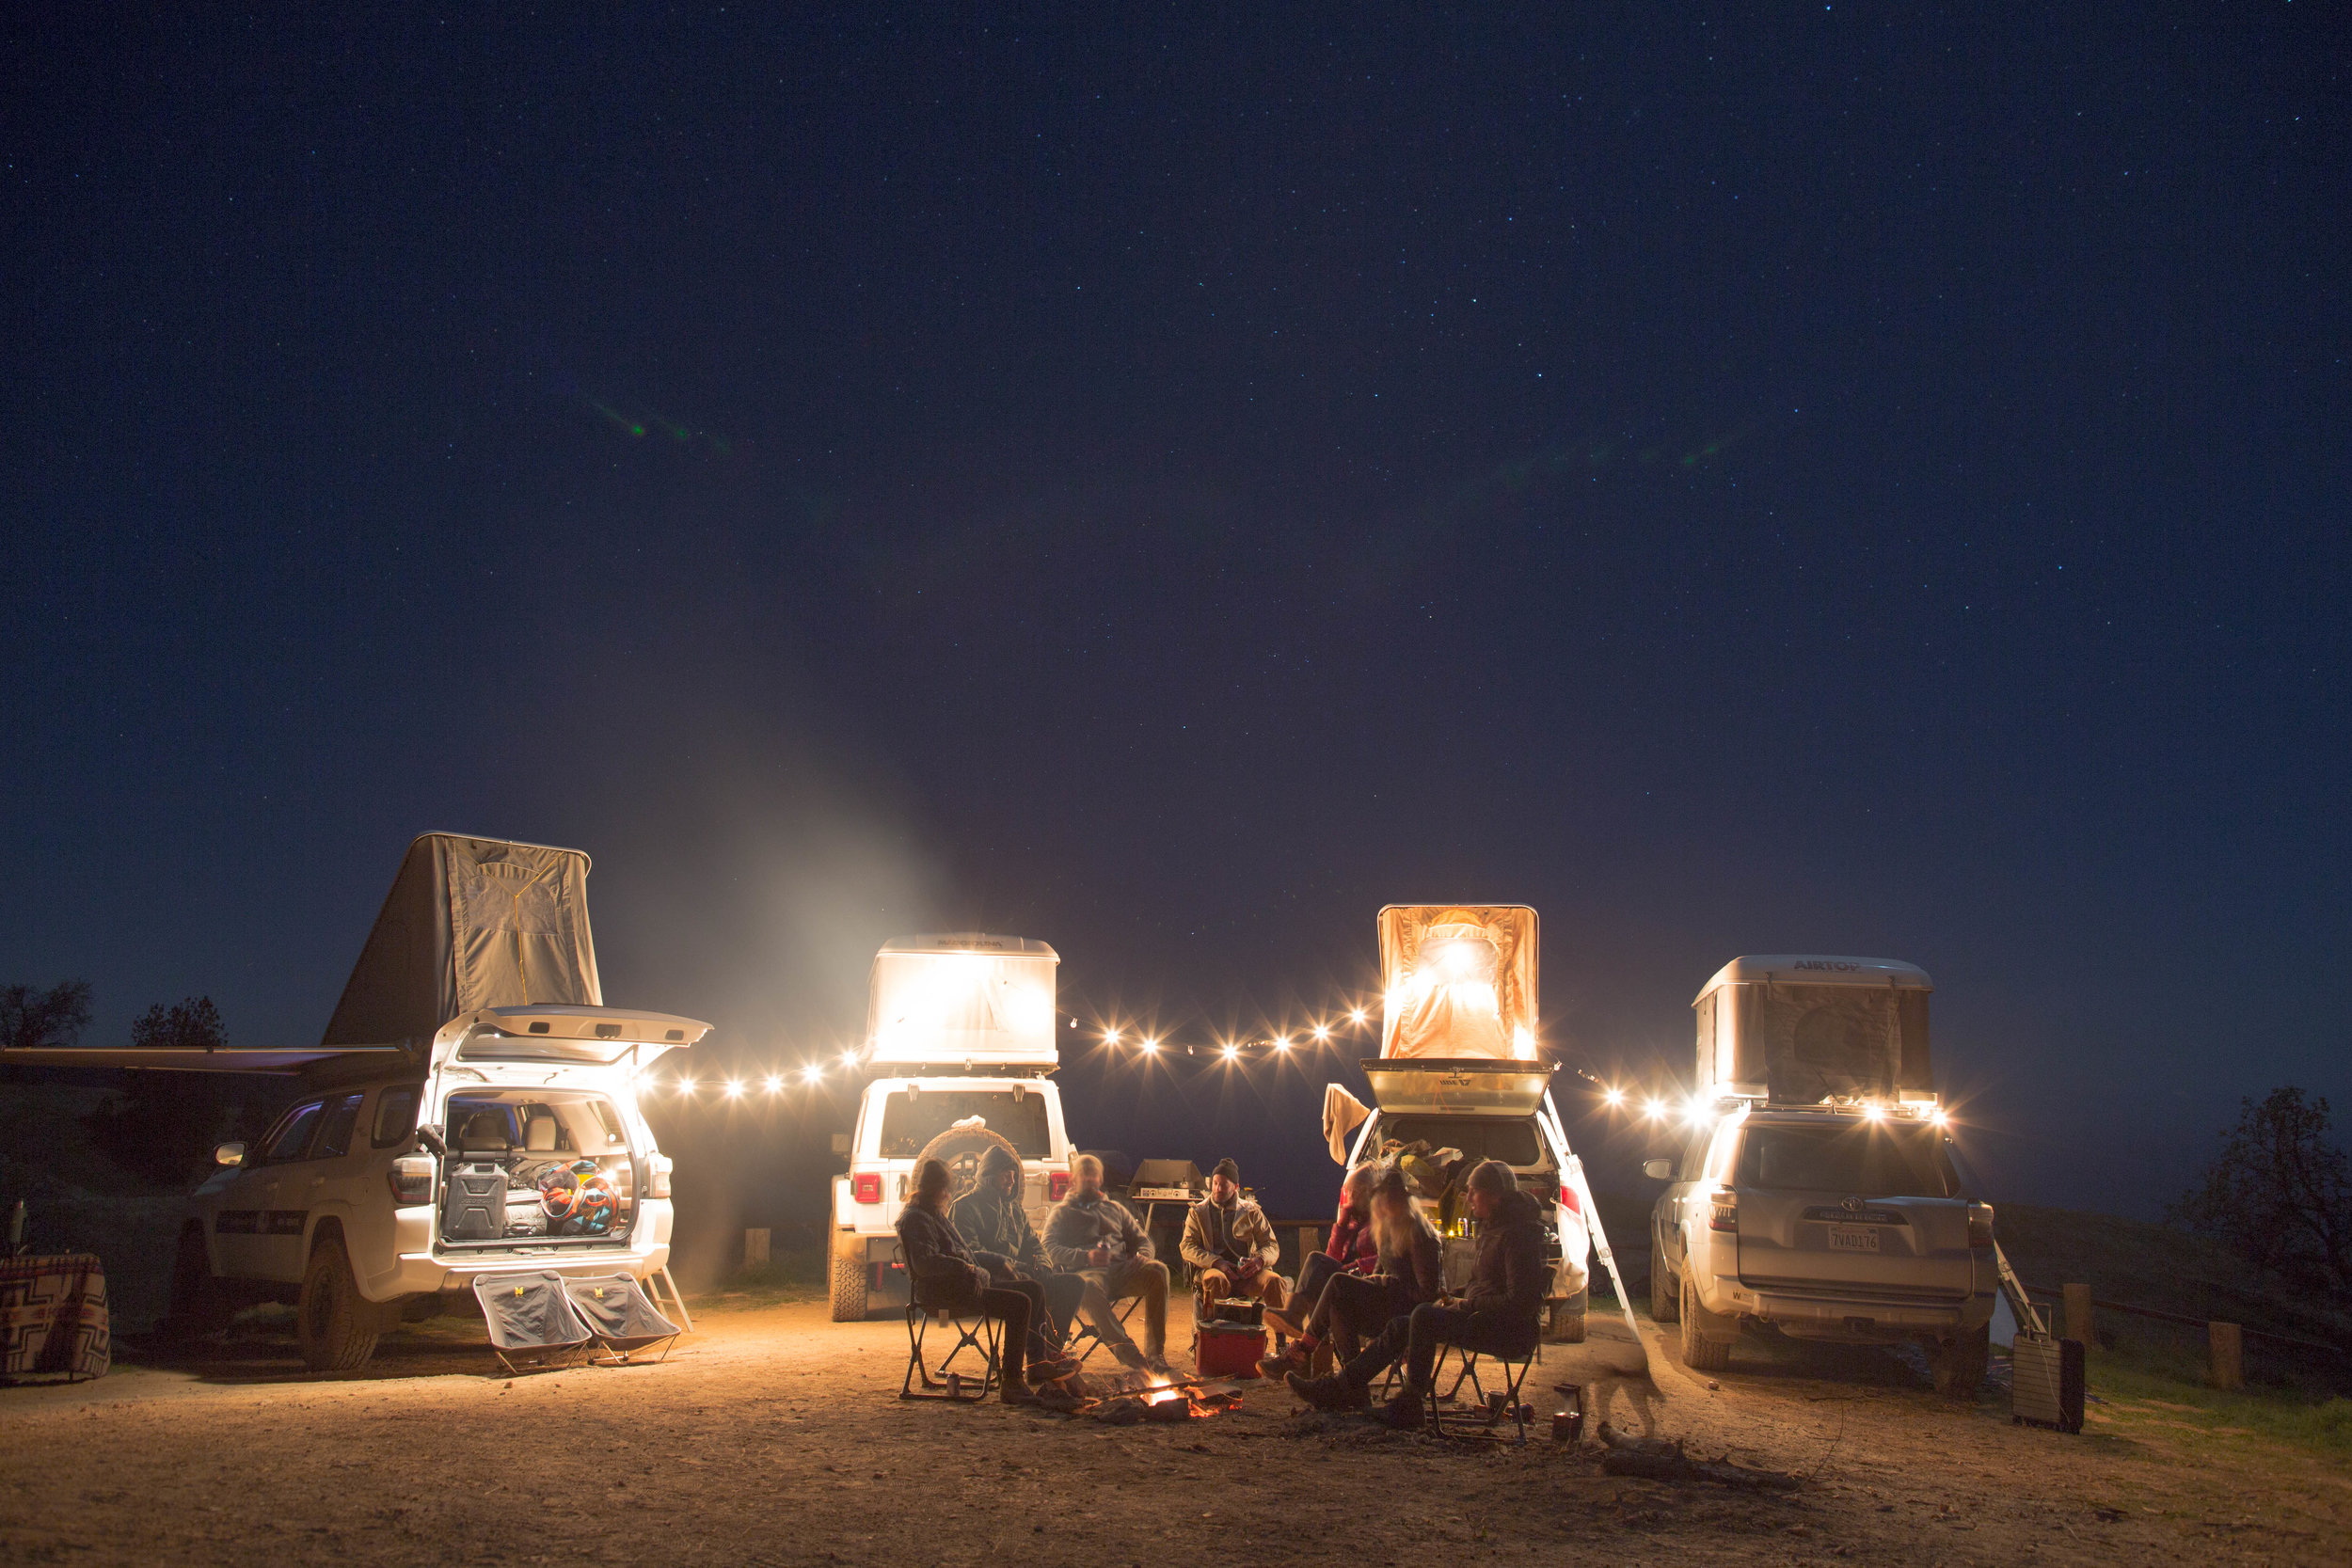 - A new campsite every night, complete with Delicious food and epic hangs.